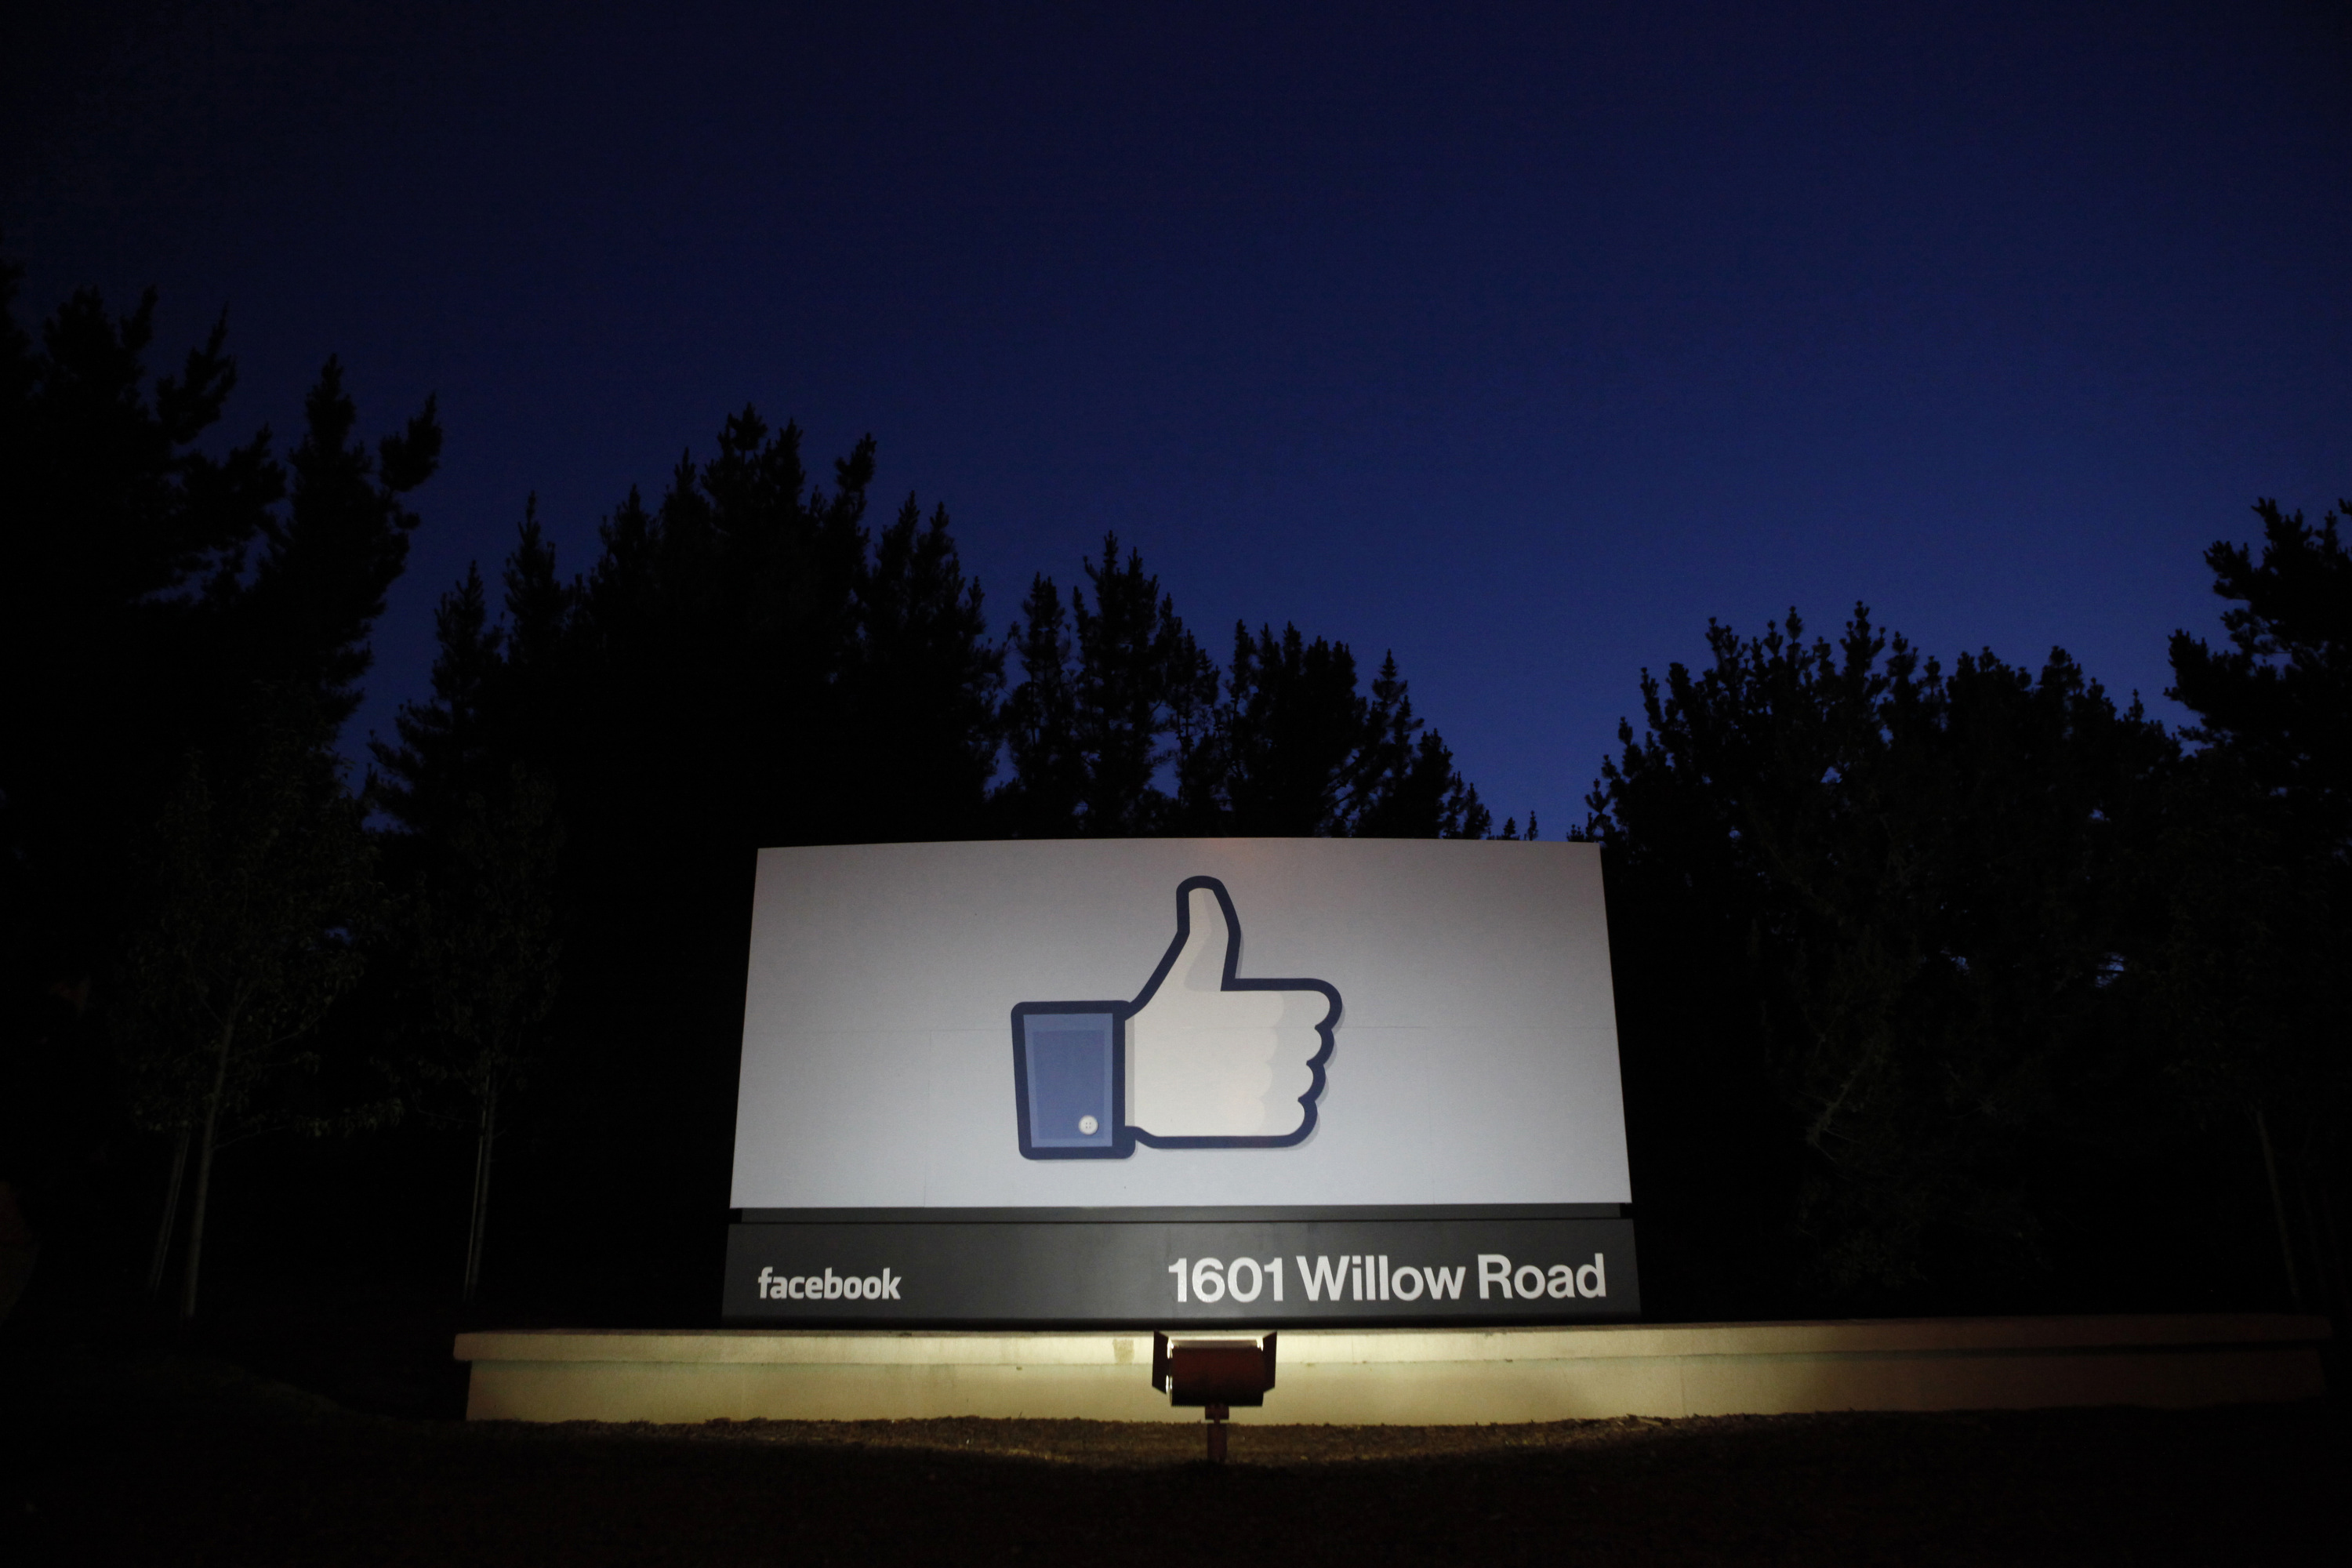 The sun rises behind the entrance sign to Facebook headquarters in Menlo Park before the company's IPO launch, May 18, 2012. Facebook Inc, will begin trading on the Nasdaq market on Friday, with it's initial public offering at $38 per share, valuing the world's largest social network at more than $100 billion.   REUTERS/Beck Diefenbach   (UNITED STATES - Tags: BUSINESS) - RTR328RK